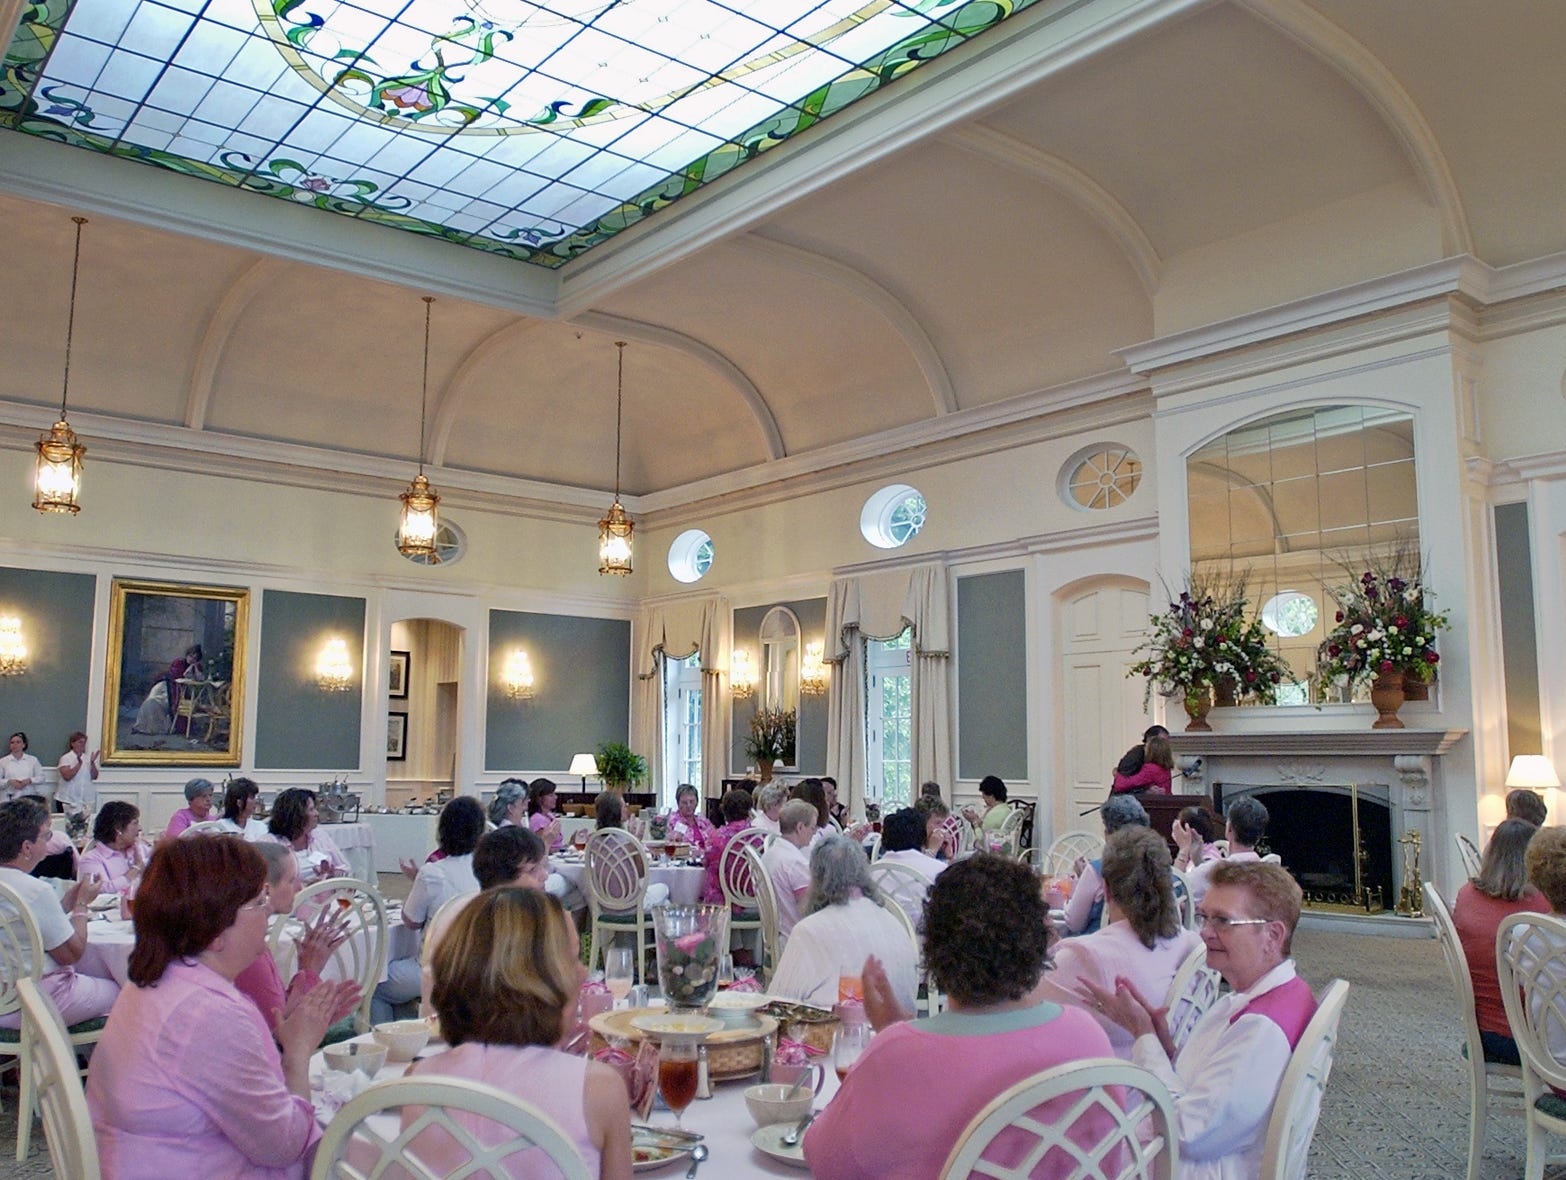 A luncheon is held in honor of breast cancer survivors Wednesday, July 12, 2006, at Eschman Meadows, the home of Tami Longaberger, CEO and chairman of Longaberger company.